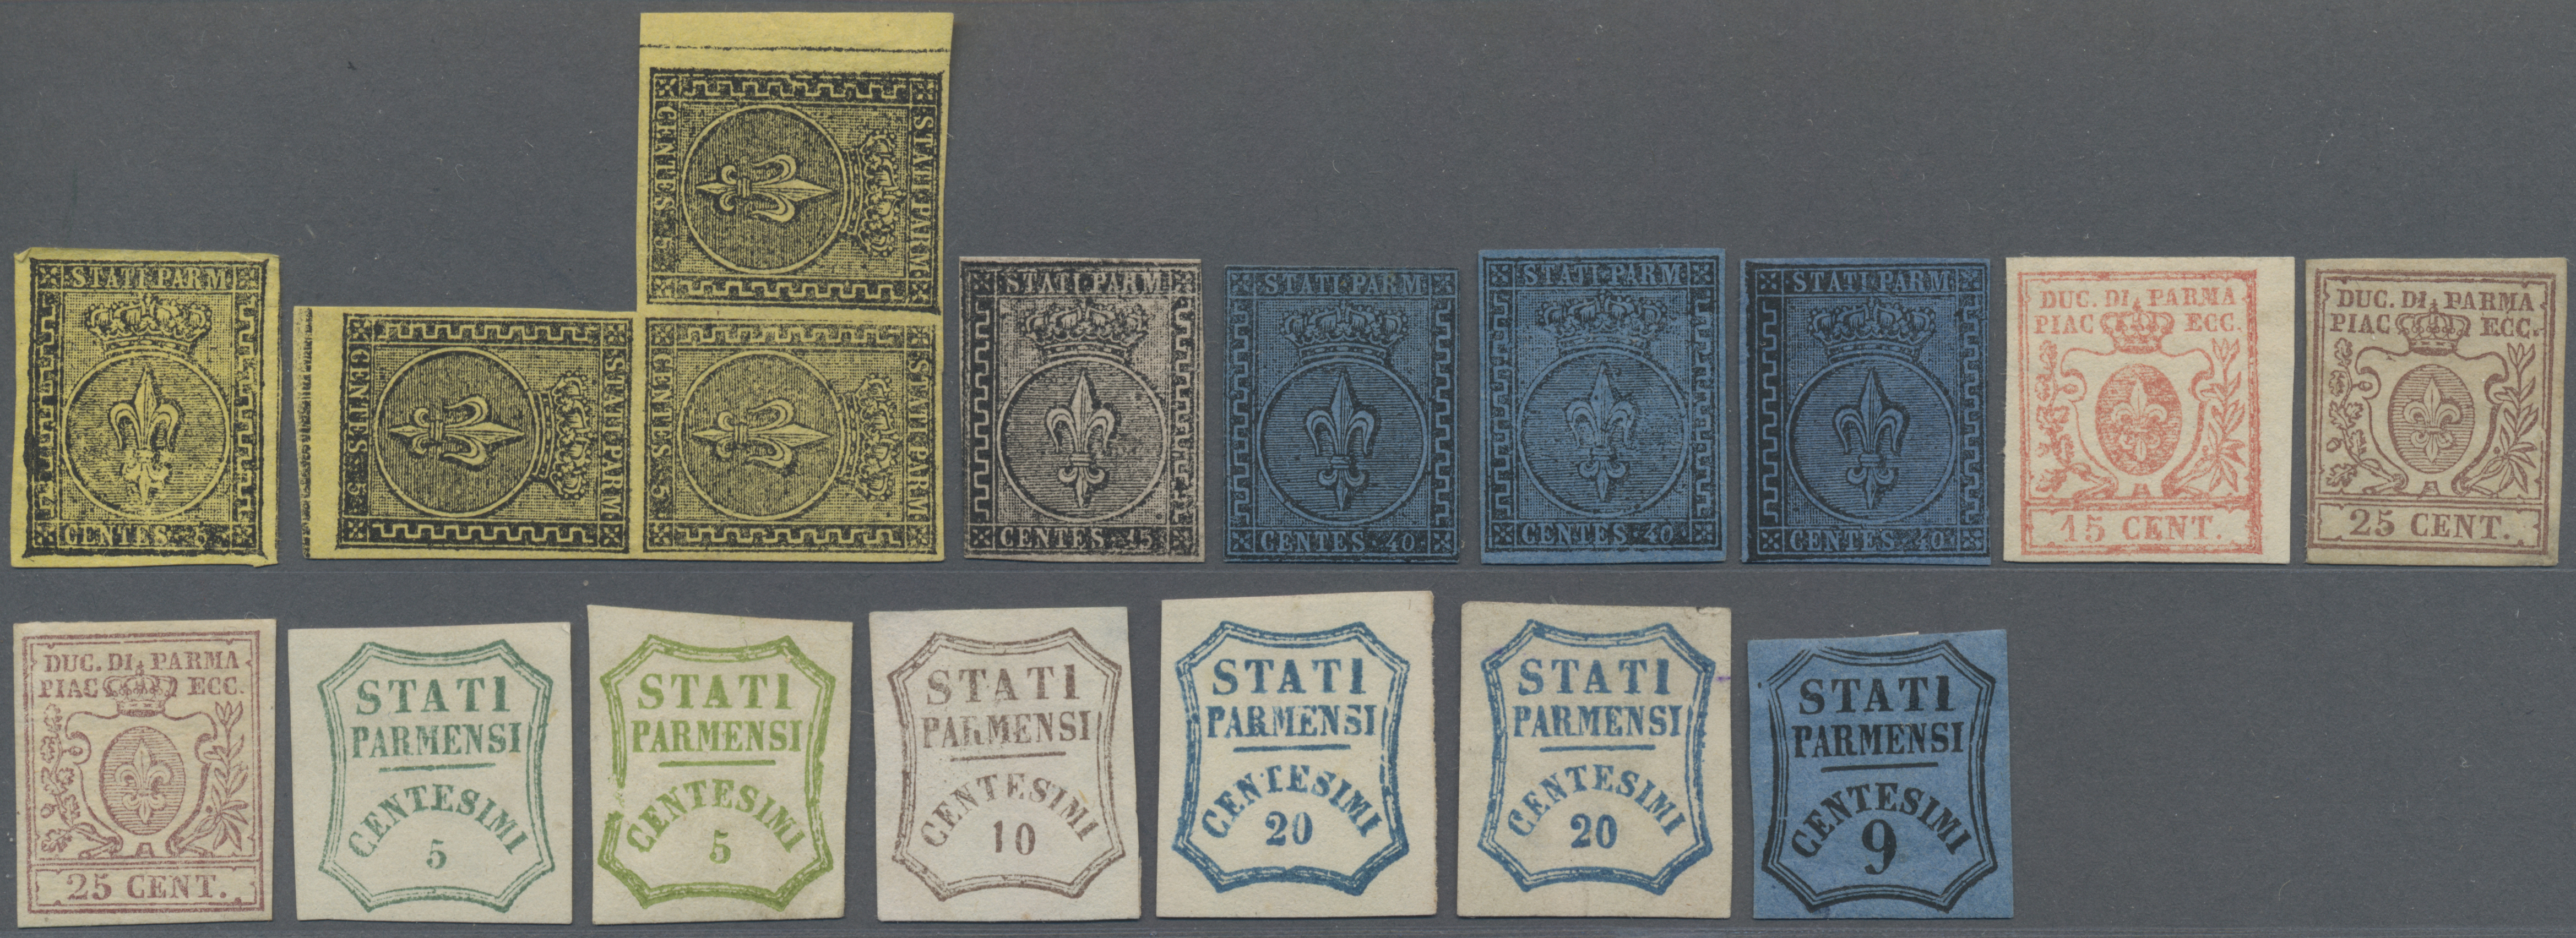 Lot 17191 - Italien - Altitalienische Staaten: Parma  -  Auktionshaus Christoph Gärtner GmbH & Co. KG Sale #48 collections Overseas  Airmail / Ship mail & Thematics